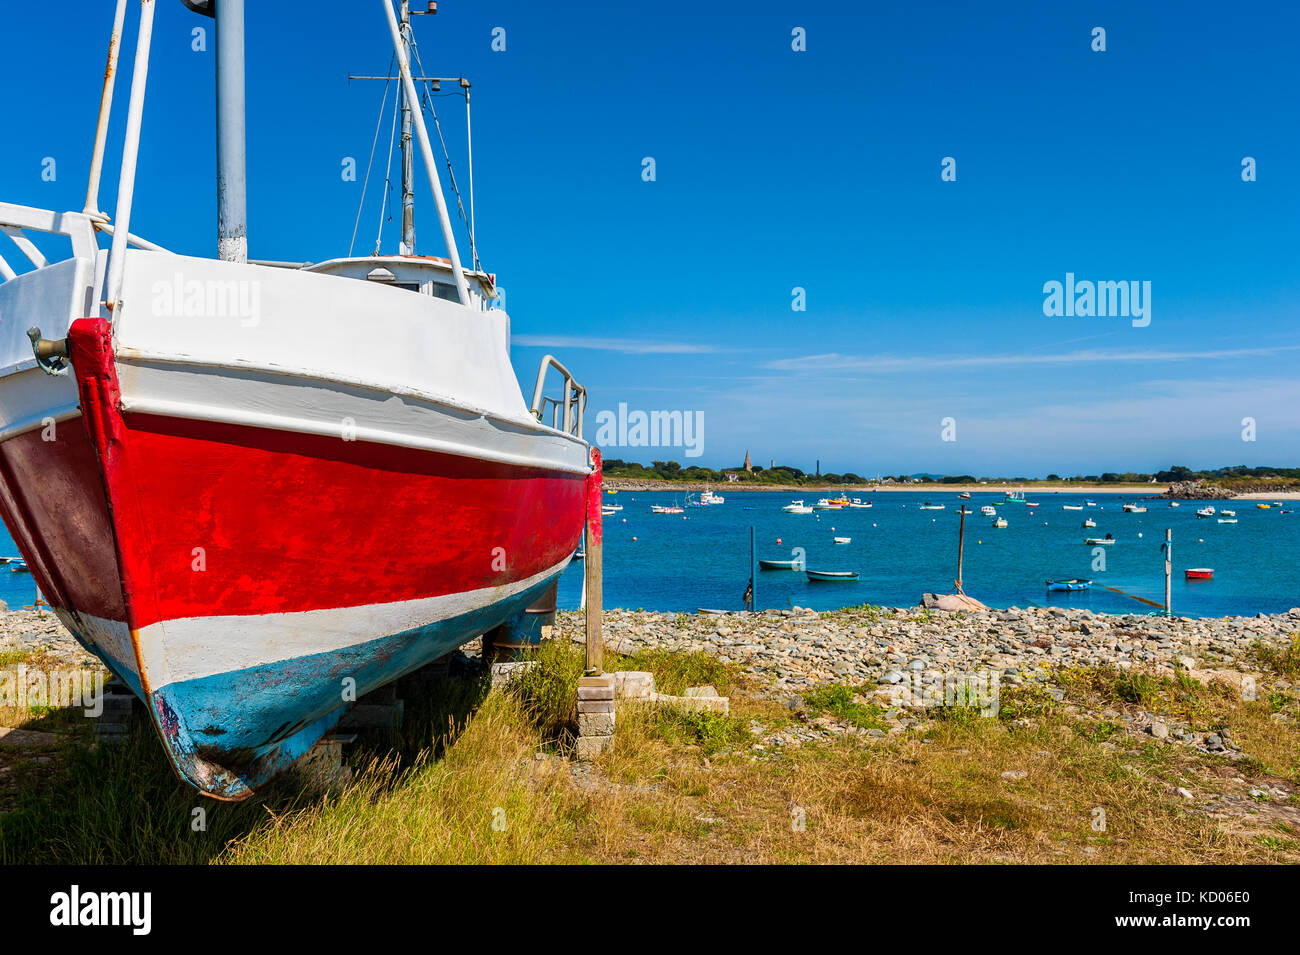 Fishing Boat on Shore in the Village of Vale, Guernsey, Channel Islands, UK on summer day - Stock Image